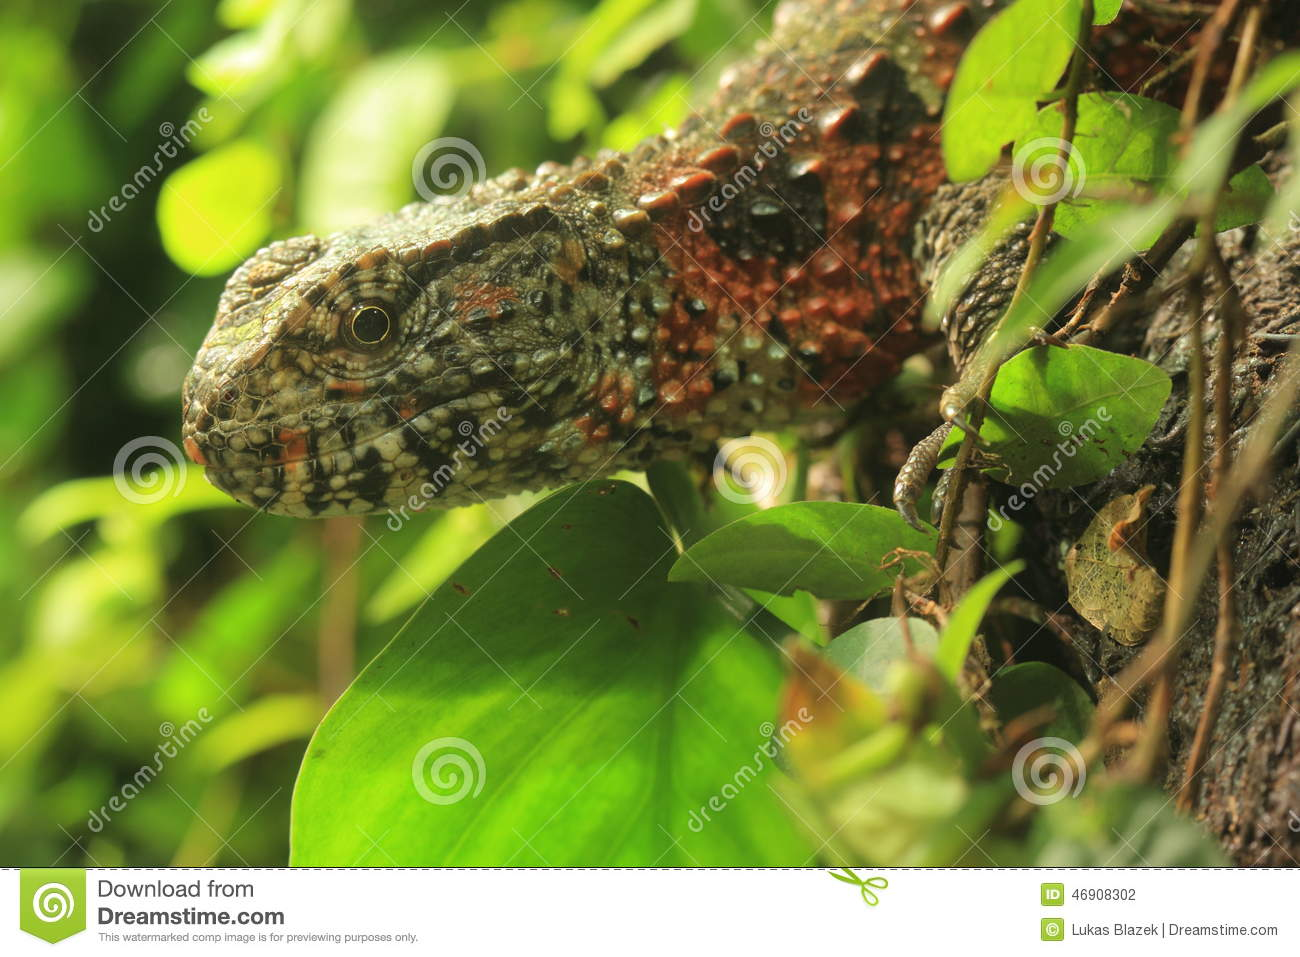 Chinese Crocodile Lizard clipart #18, Download drawings